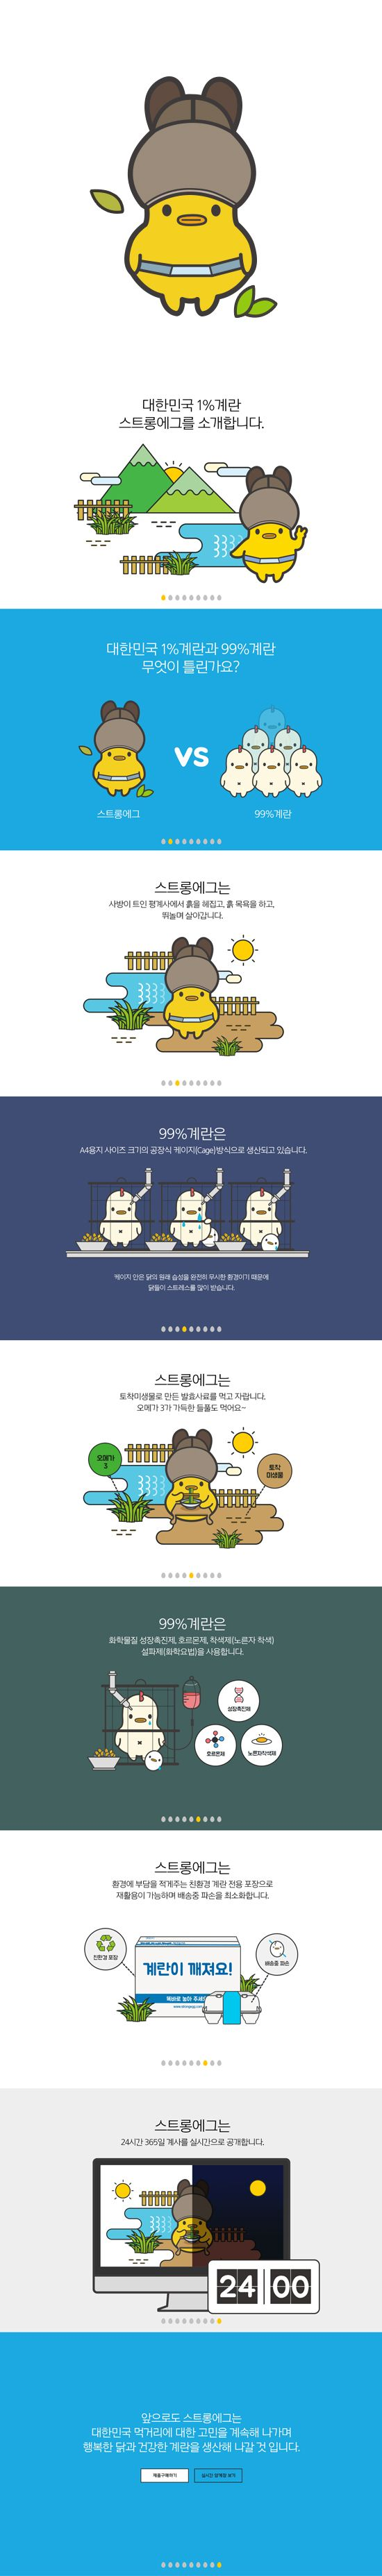 infographic, web design studio-jt.co.kr